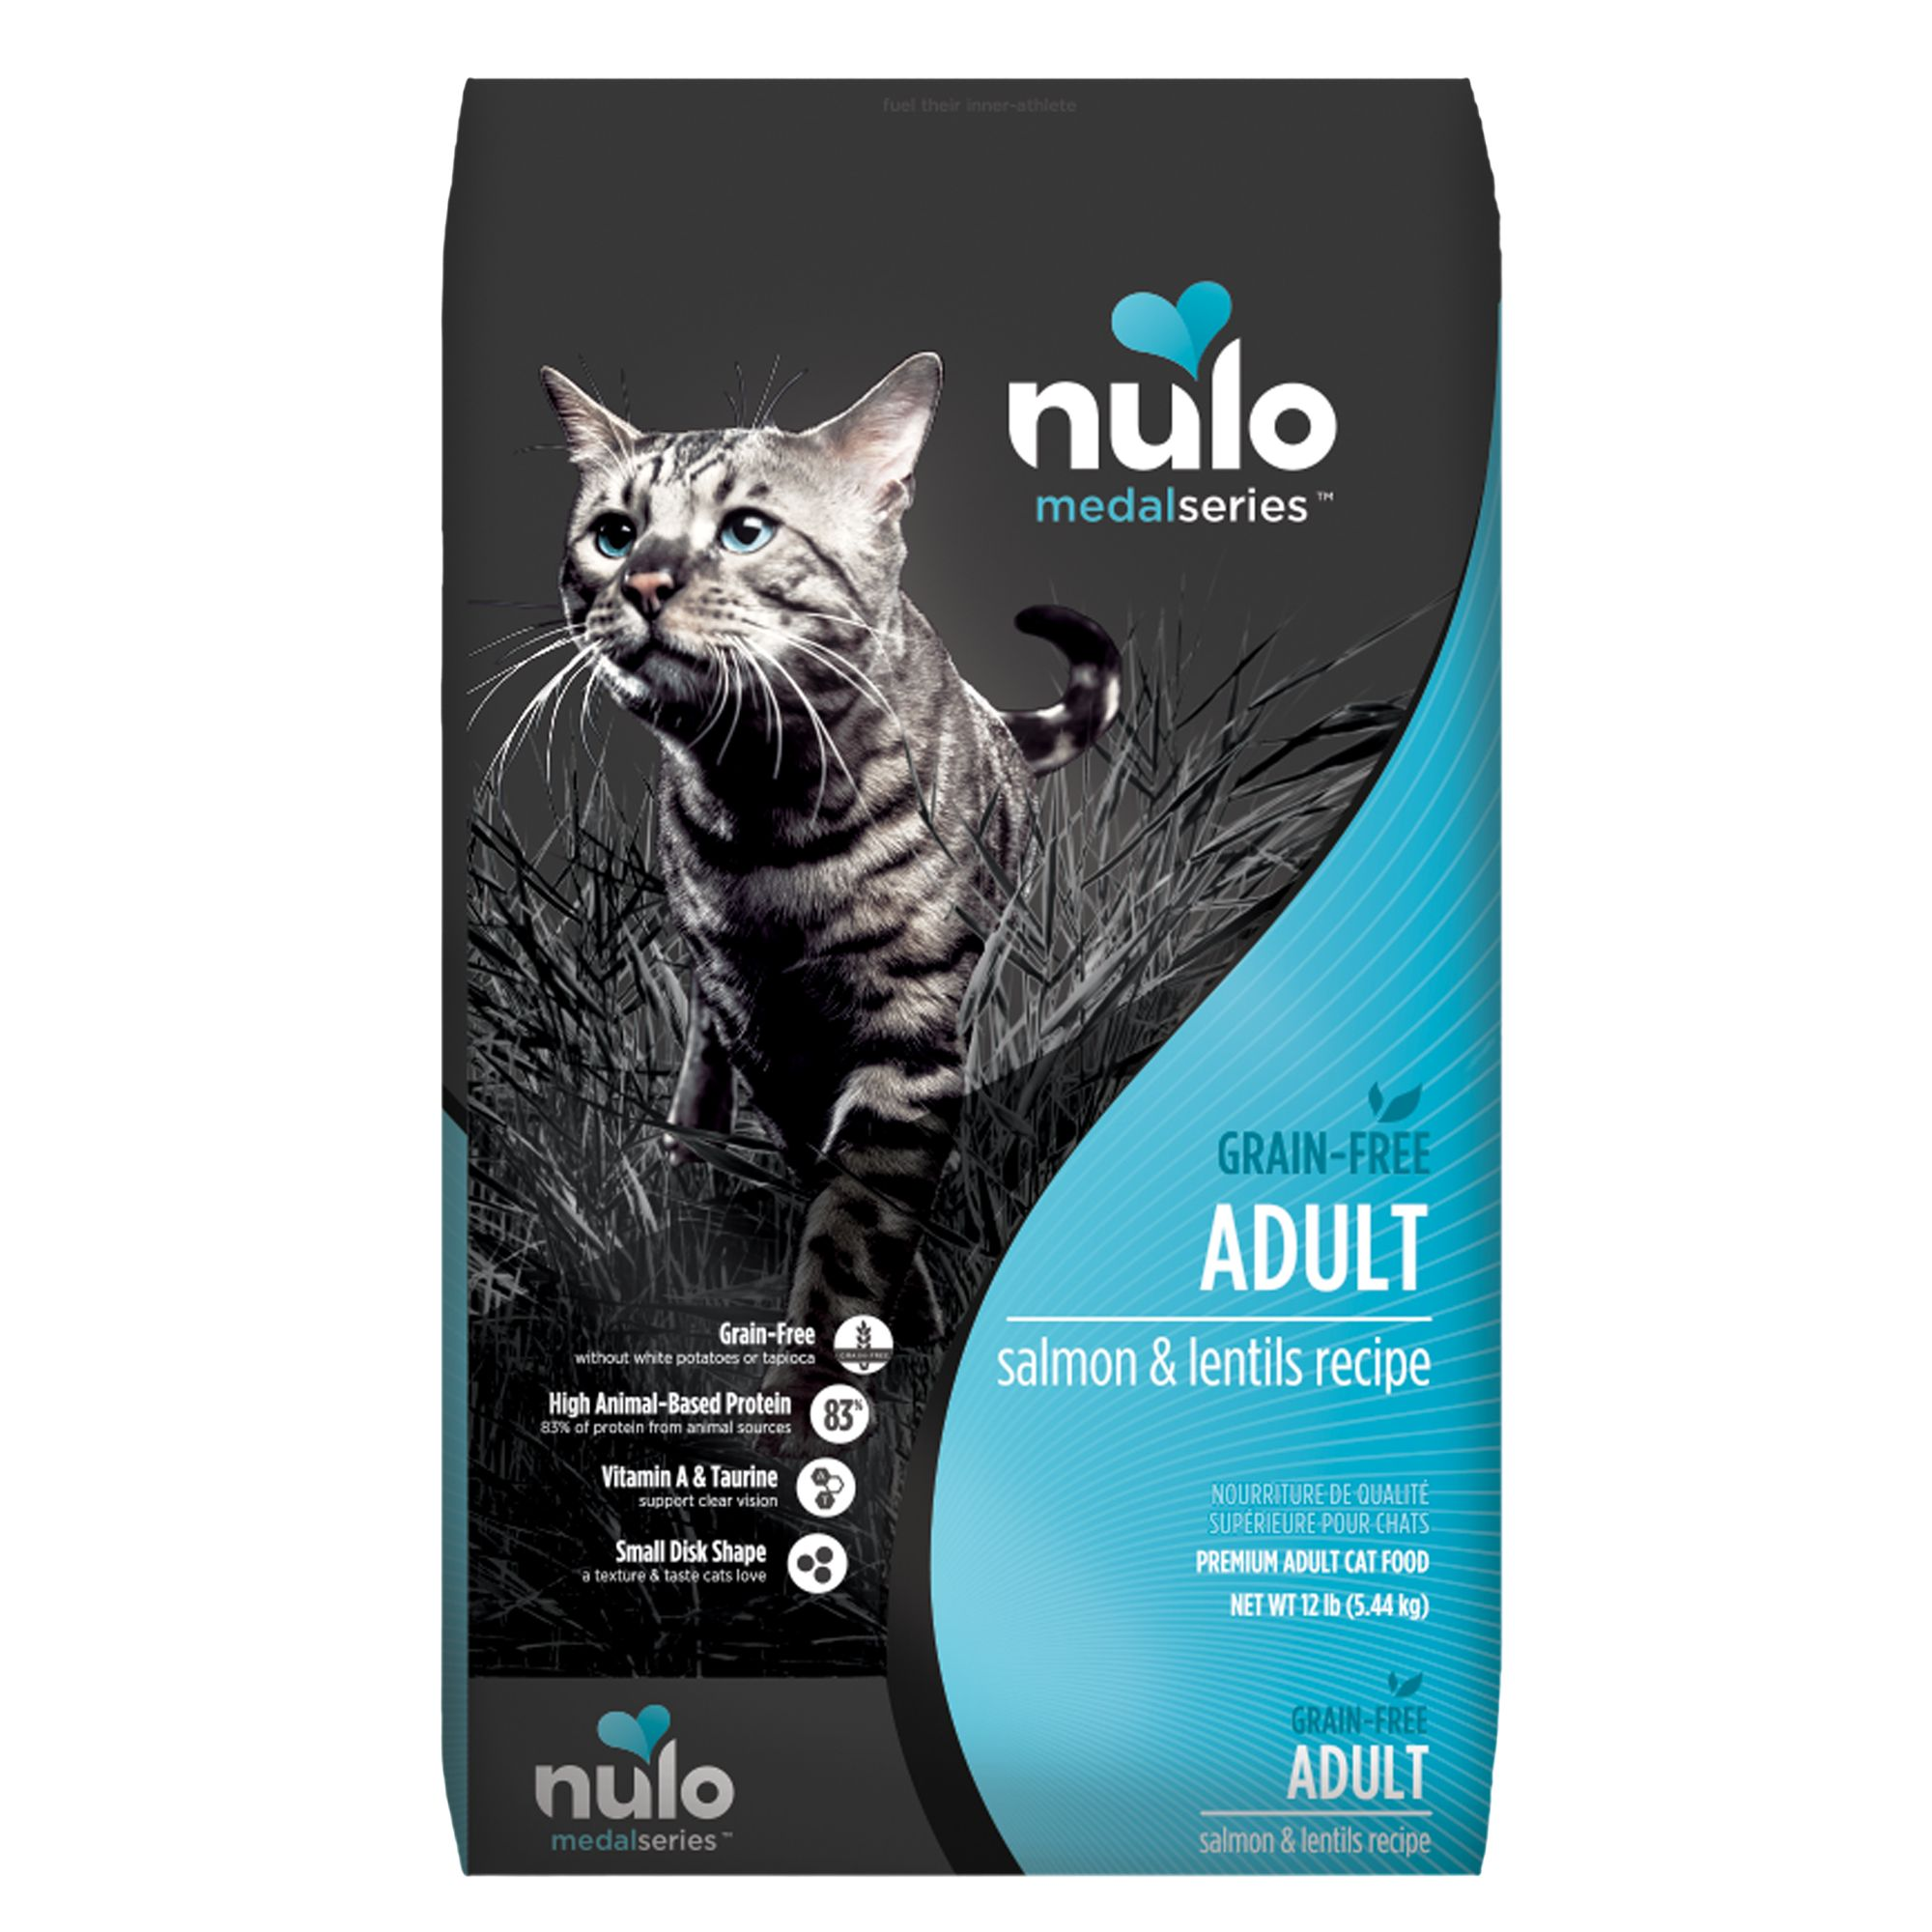 Nulo Medalseries Adult Cat Food Grain Free Salmon And Lentils Size 12 Lb